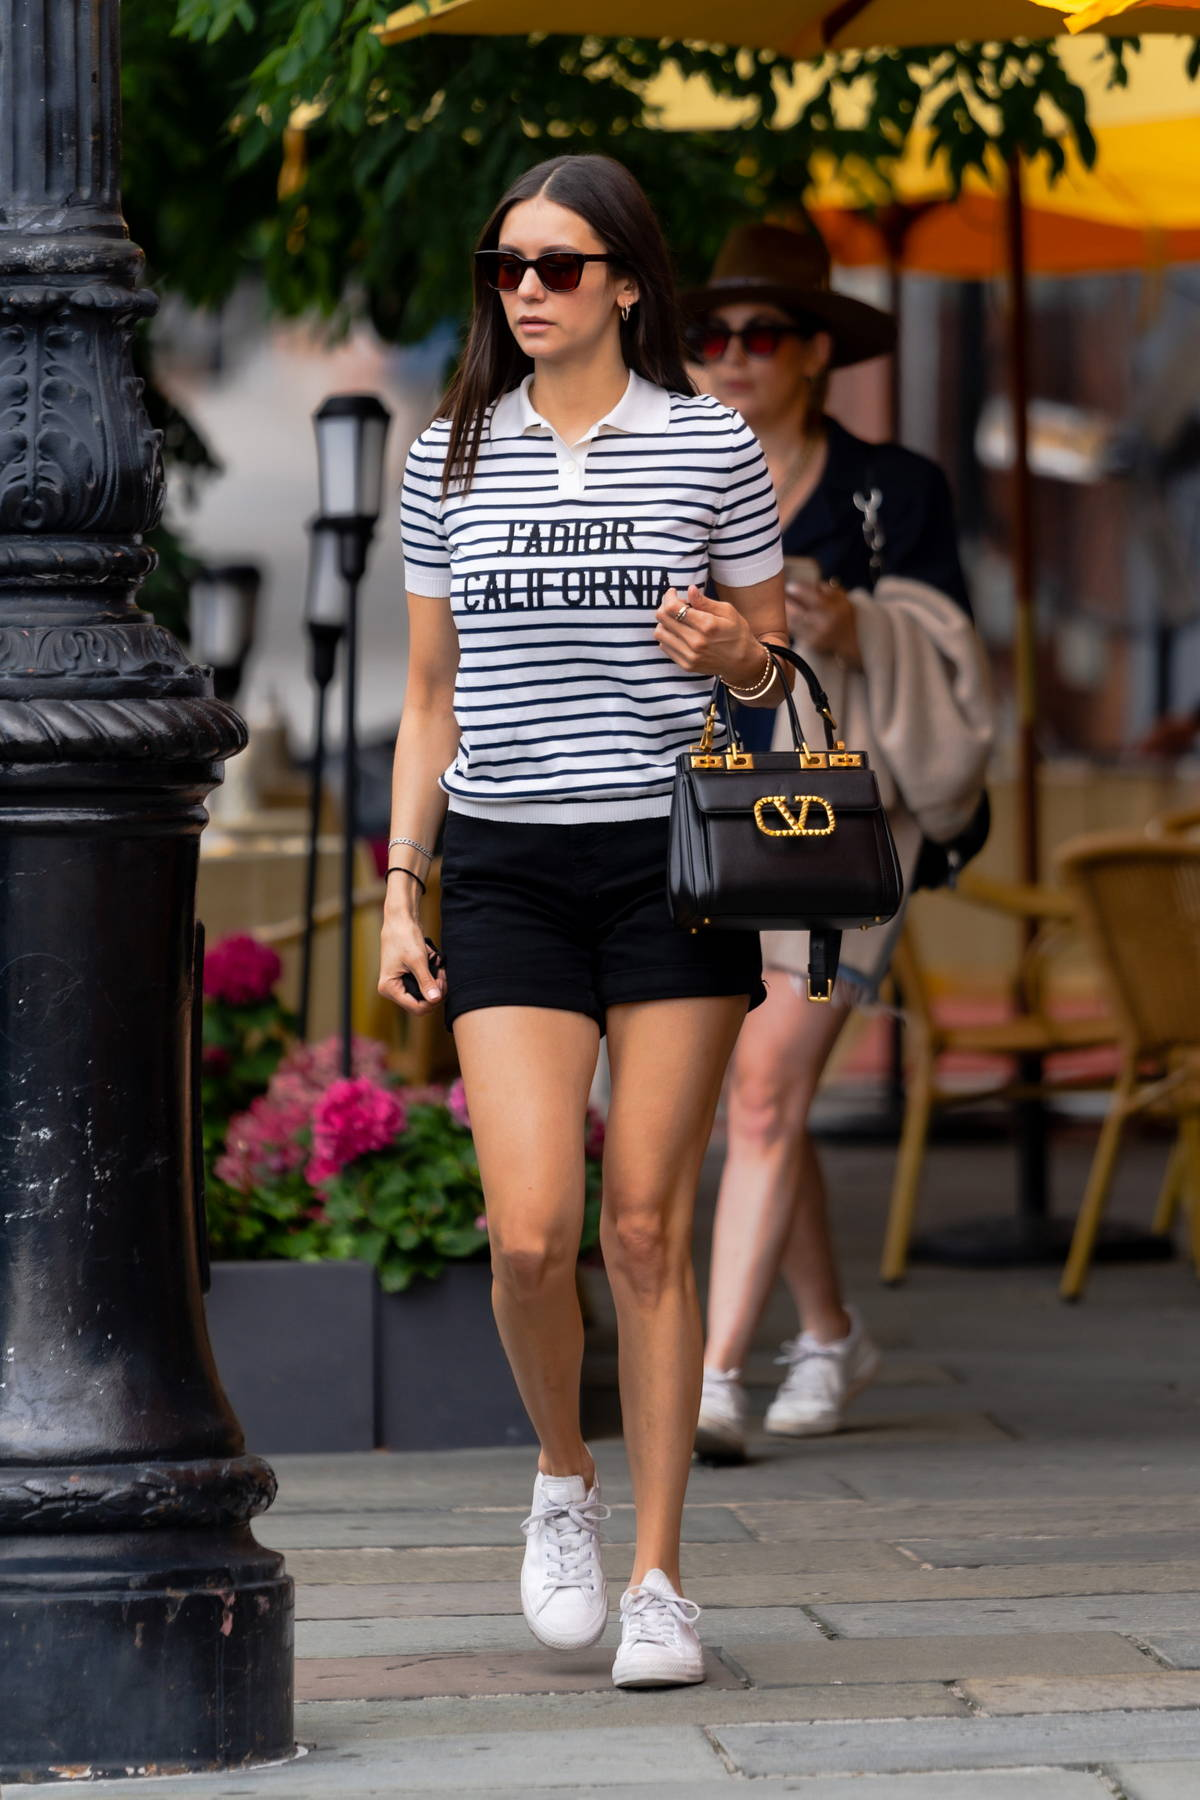 Nina Dobrev puts on a leggy display in black shorts paired with striped J'Adior California top while stepping out in New York City